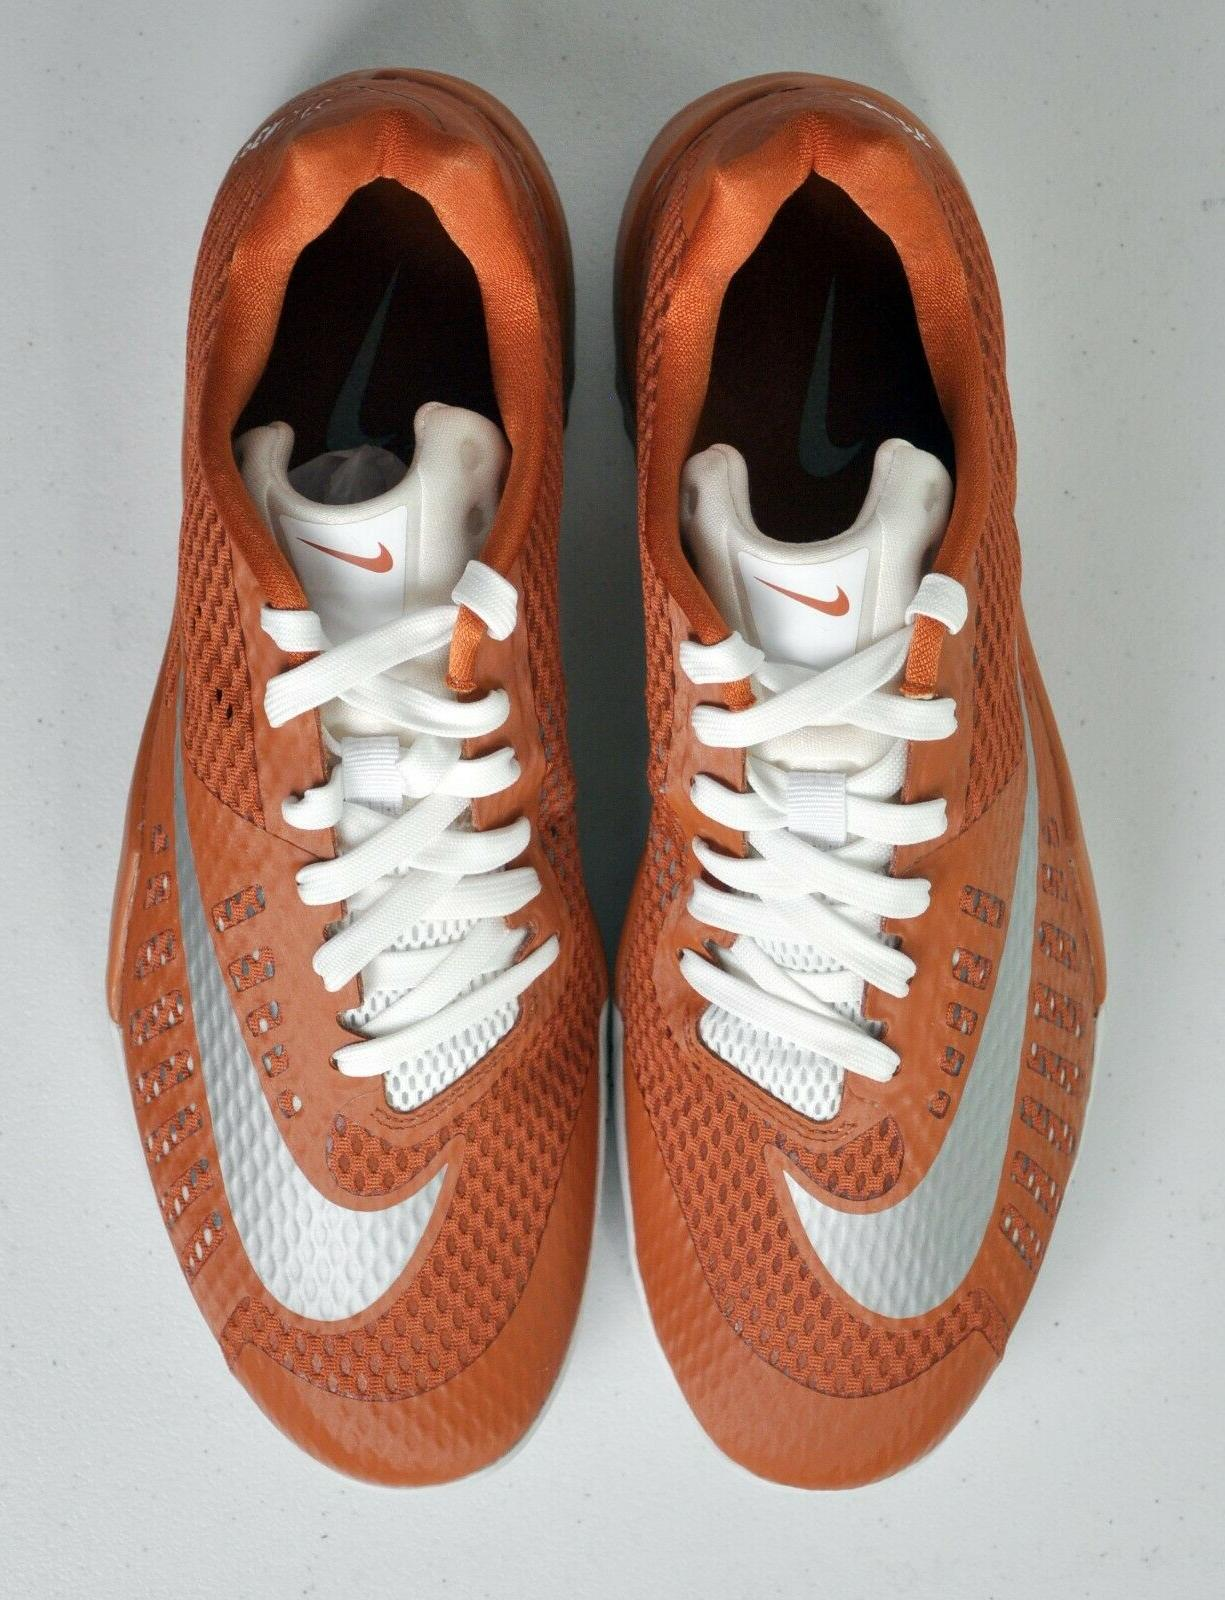 Nike Hyperlive Shoes Sneakers Size